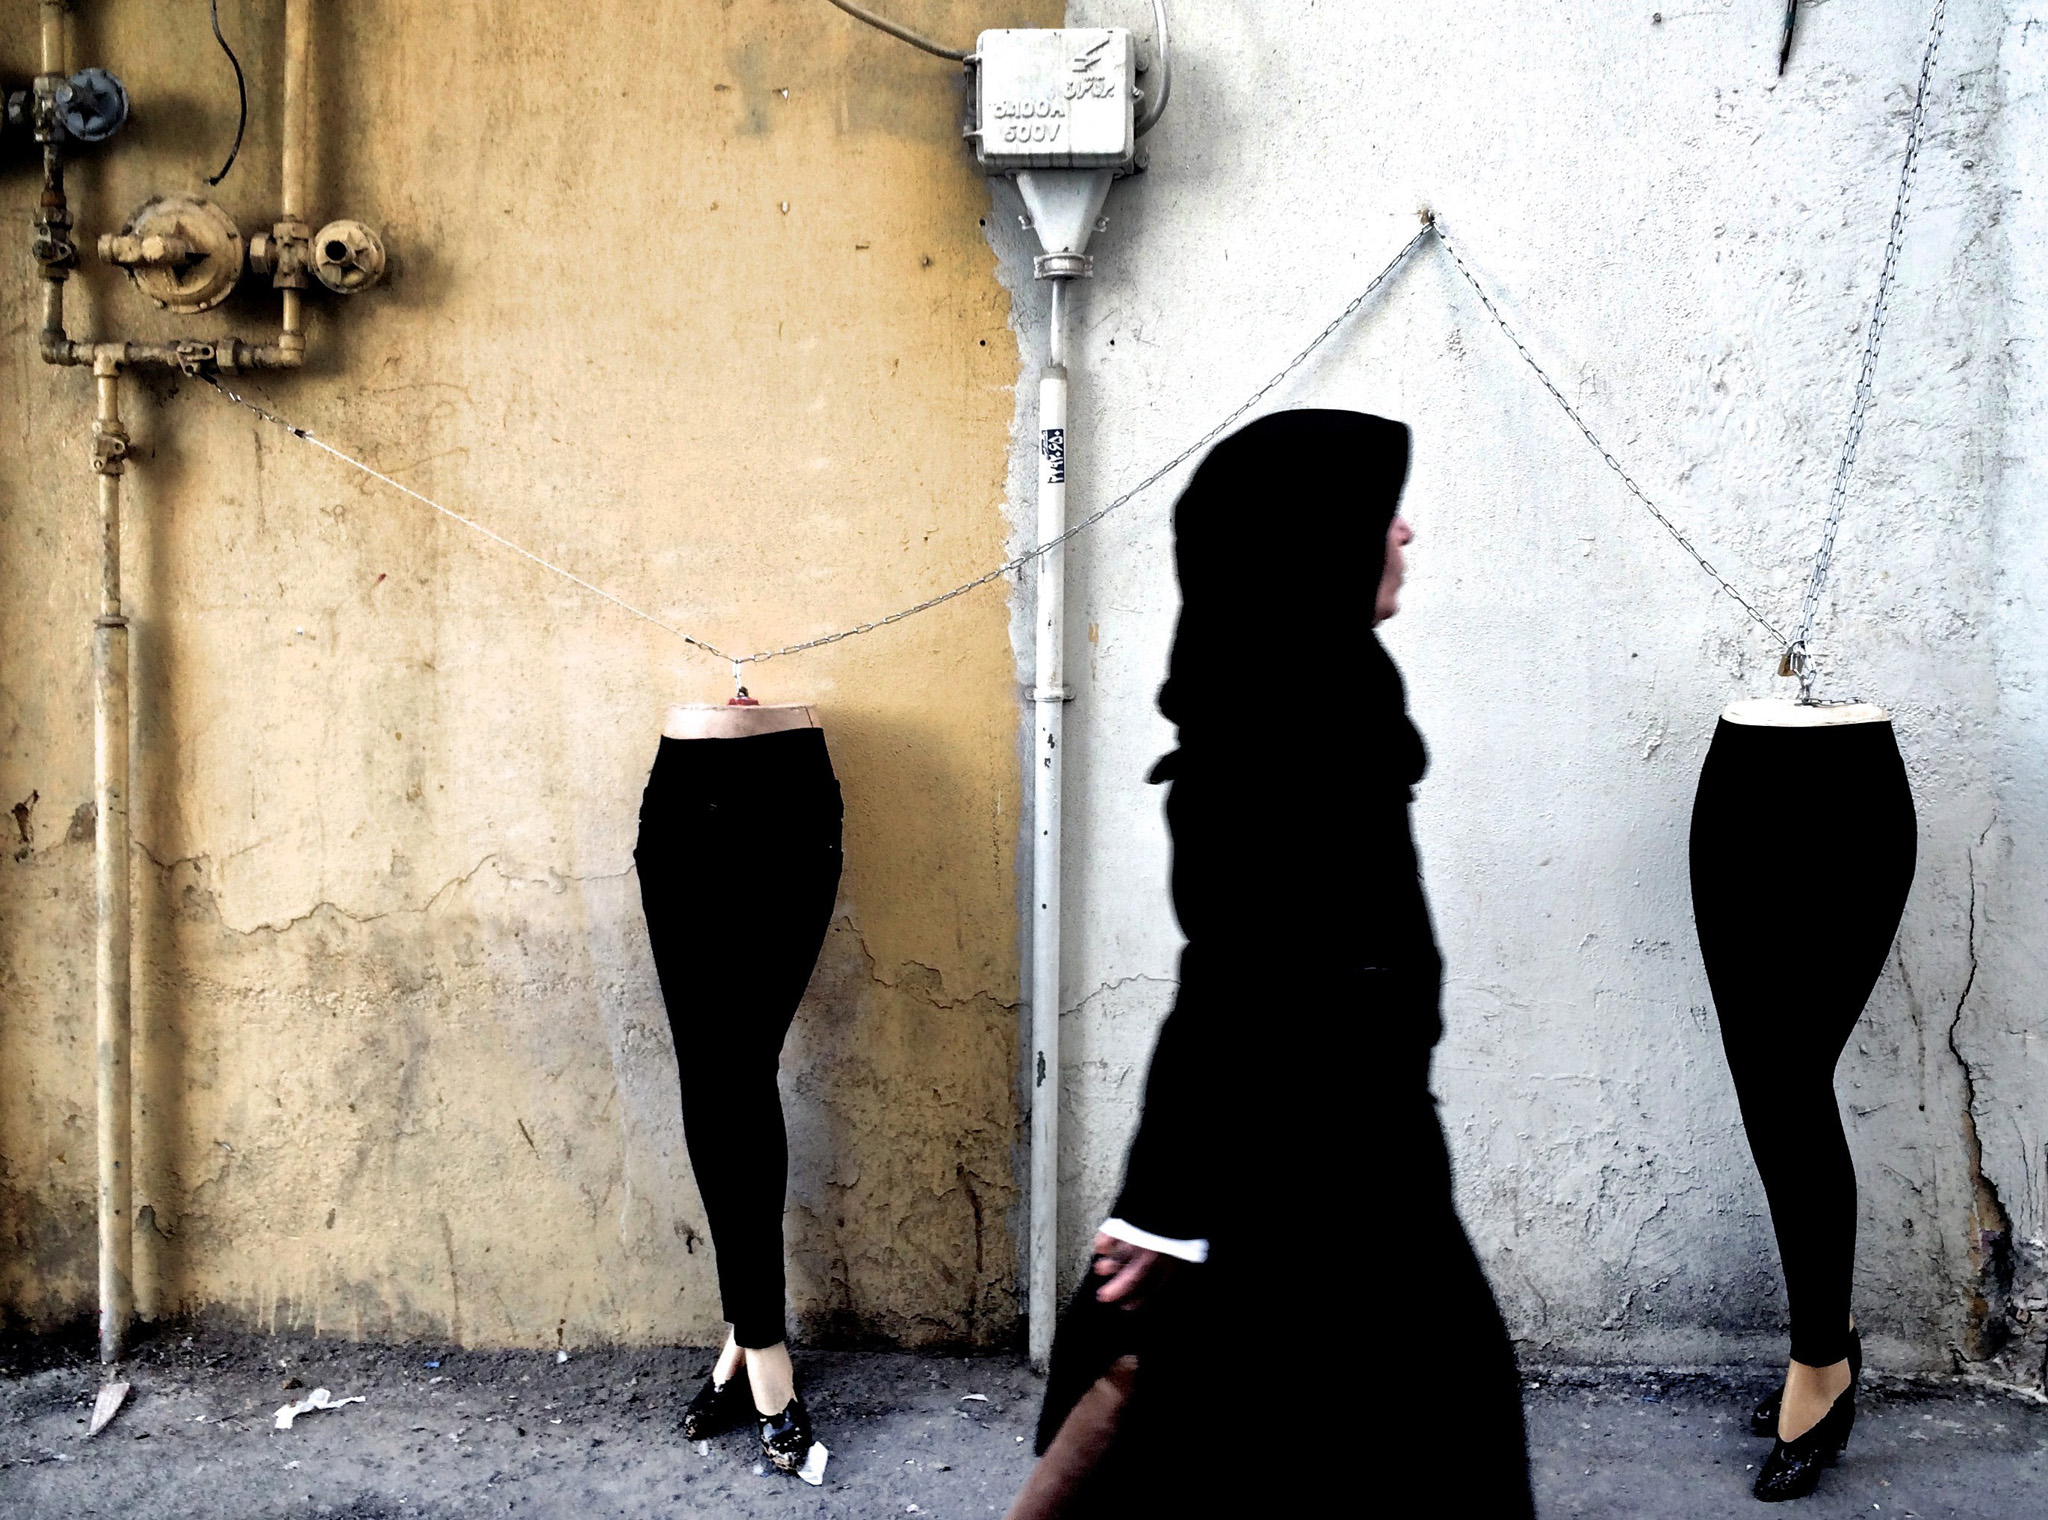 An Iranian woman walks past mannequins l...An Iranian woman walks past mannequins locked to a gas pipe in northern Tehran on December 15, 2014. AFP PHOTO/BEHROUZ MEHRIBEHROUZ MEHRI/AFP/Getty Images